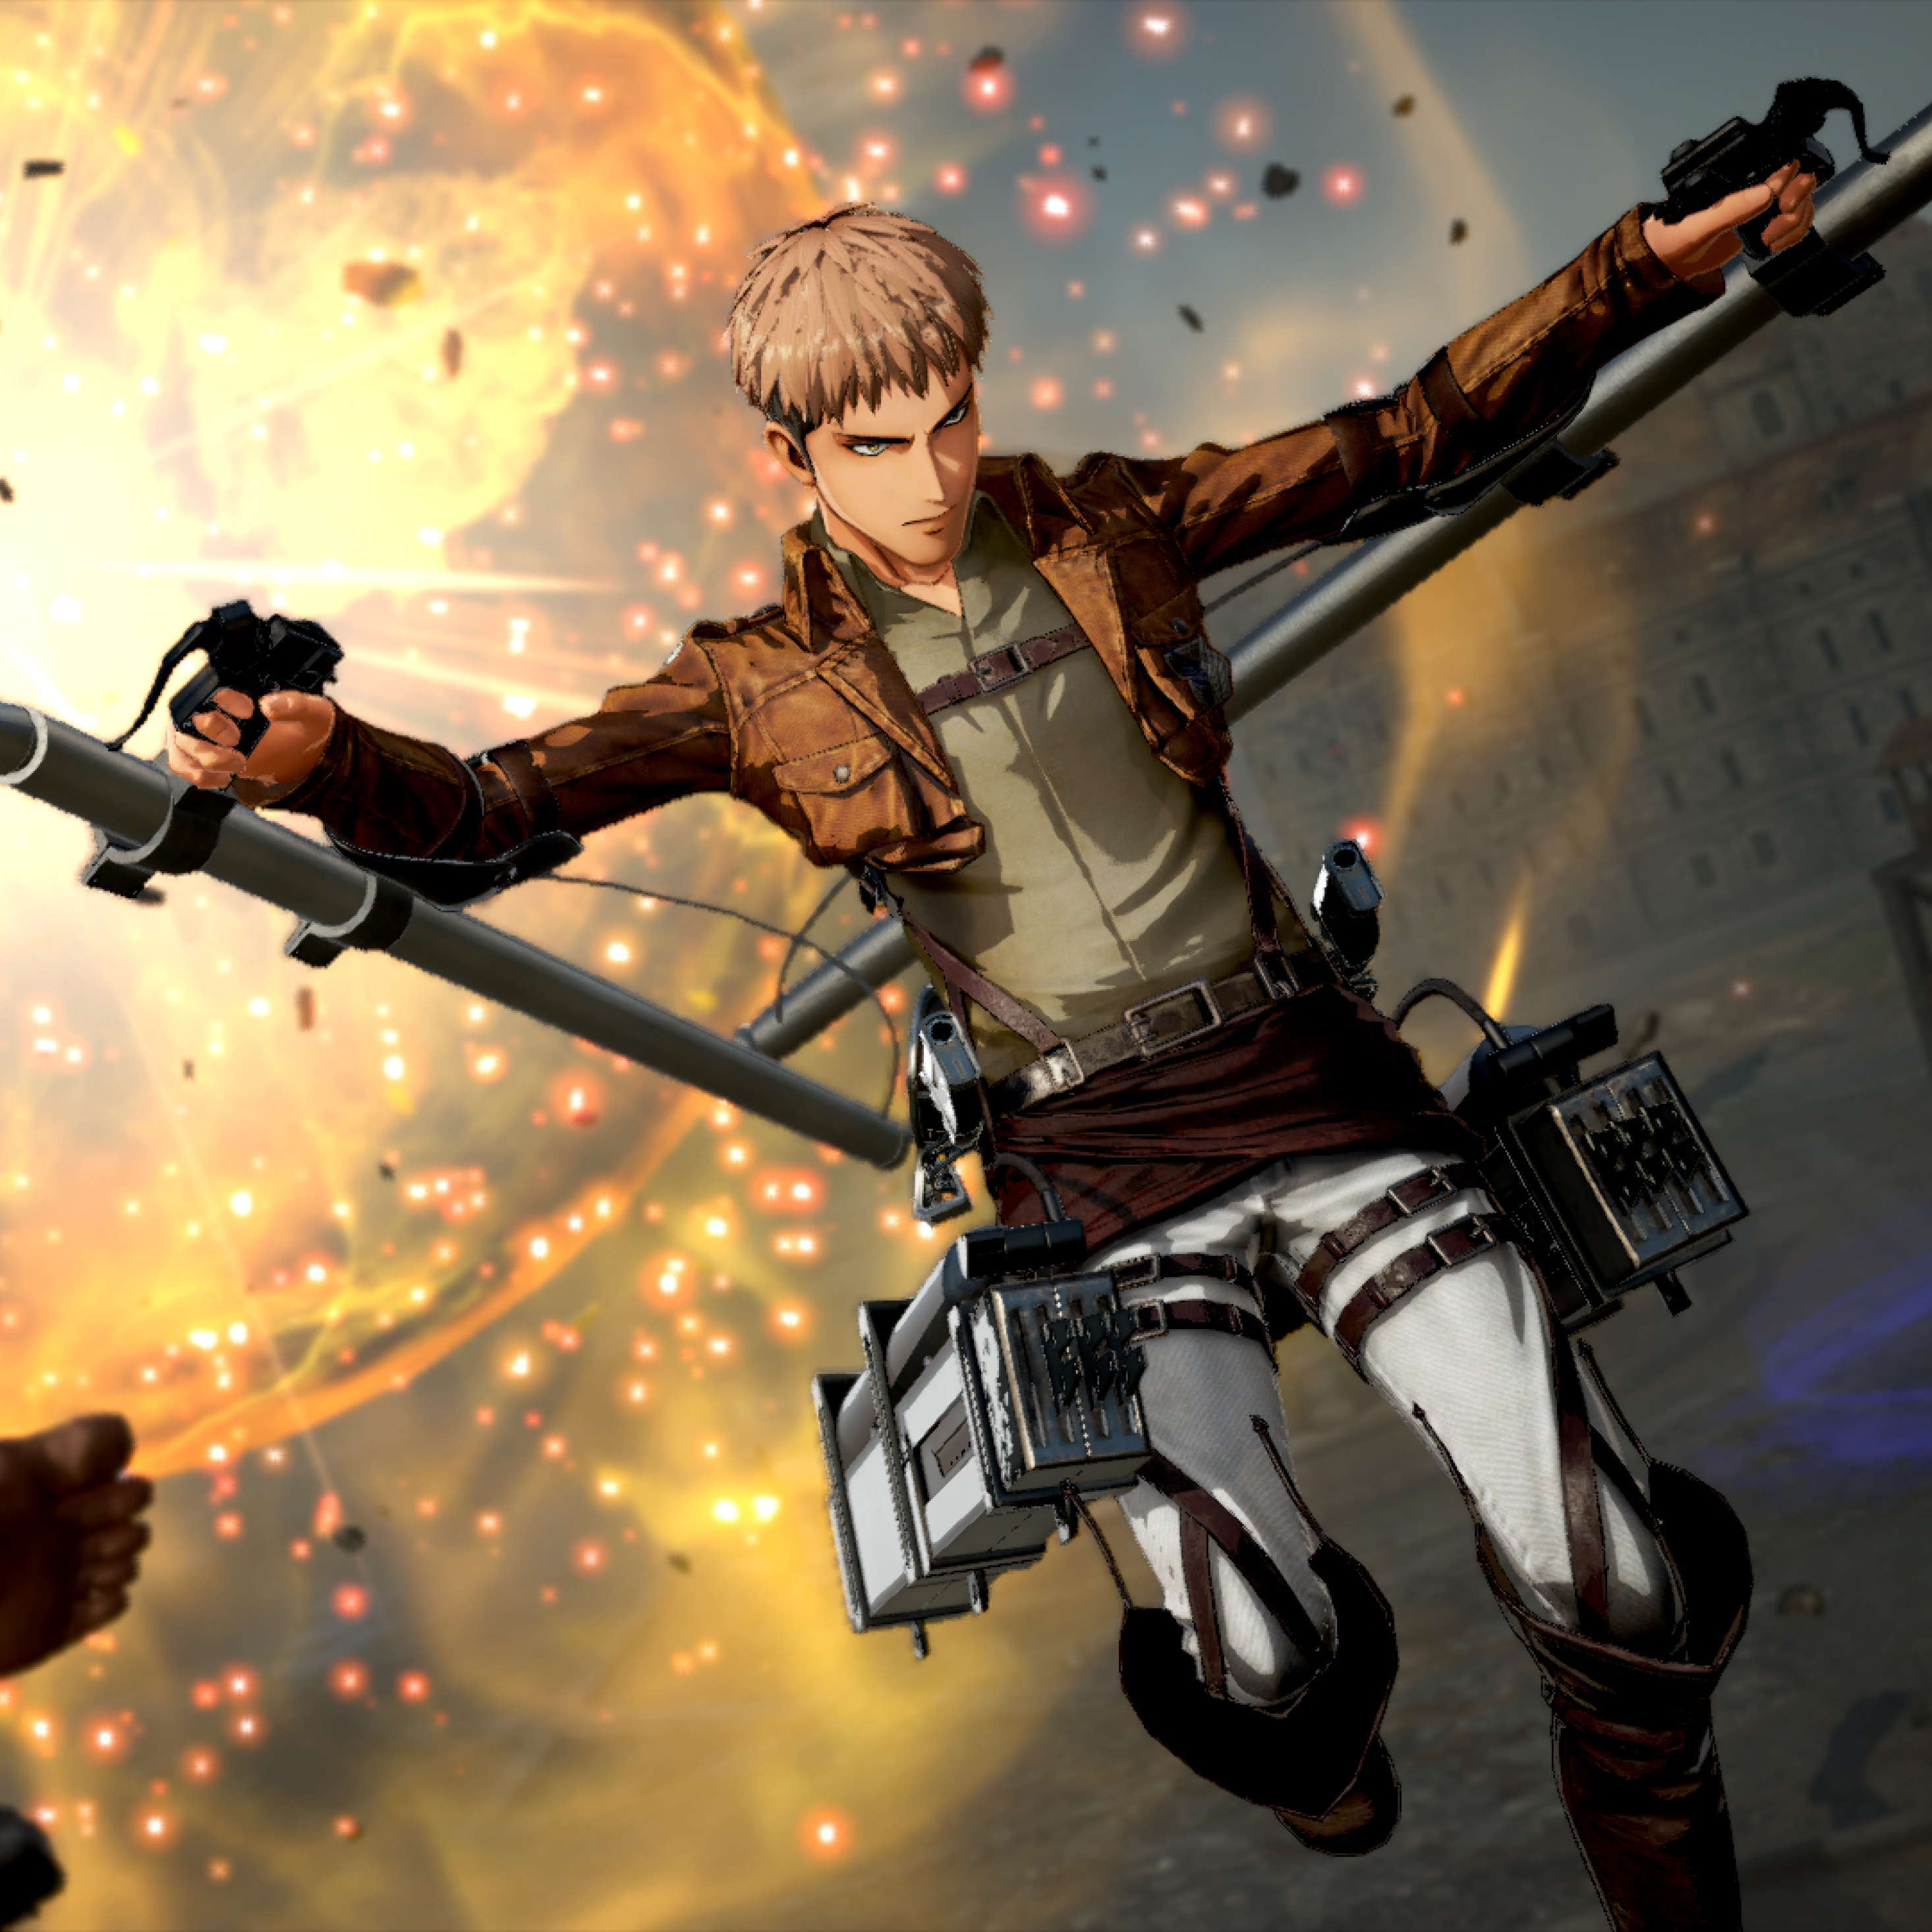 2932x2932 Jean Thunder Spear Attack On Titan 2 Ipad Pro Retina Display Wallpaper Hd Games 4k Wallpapers Images Photos And Background